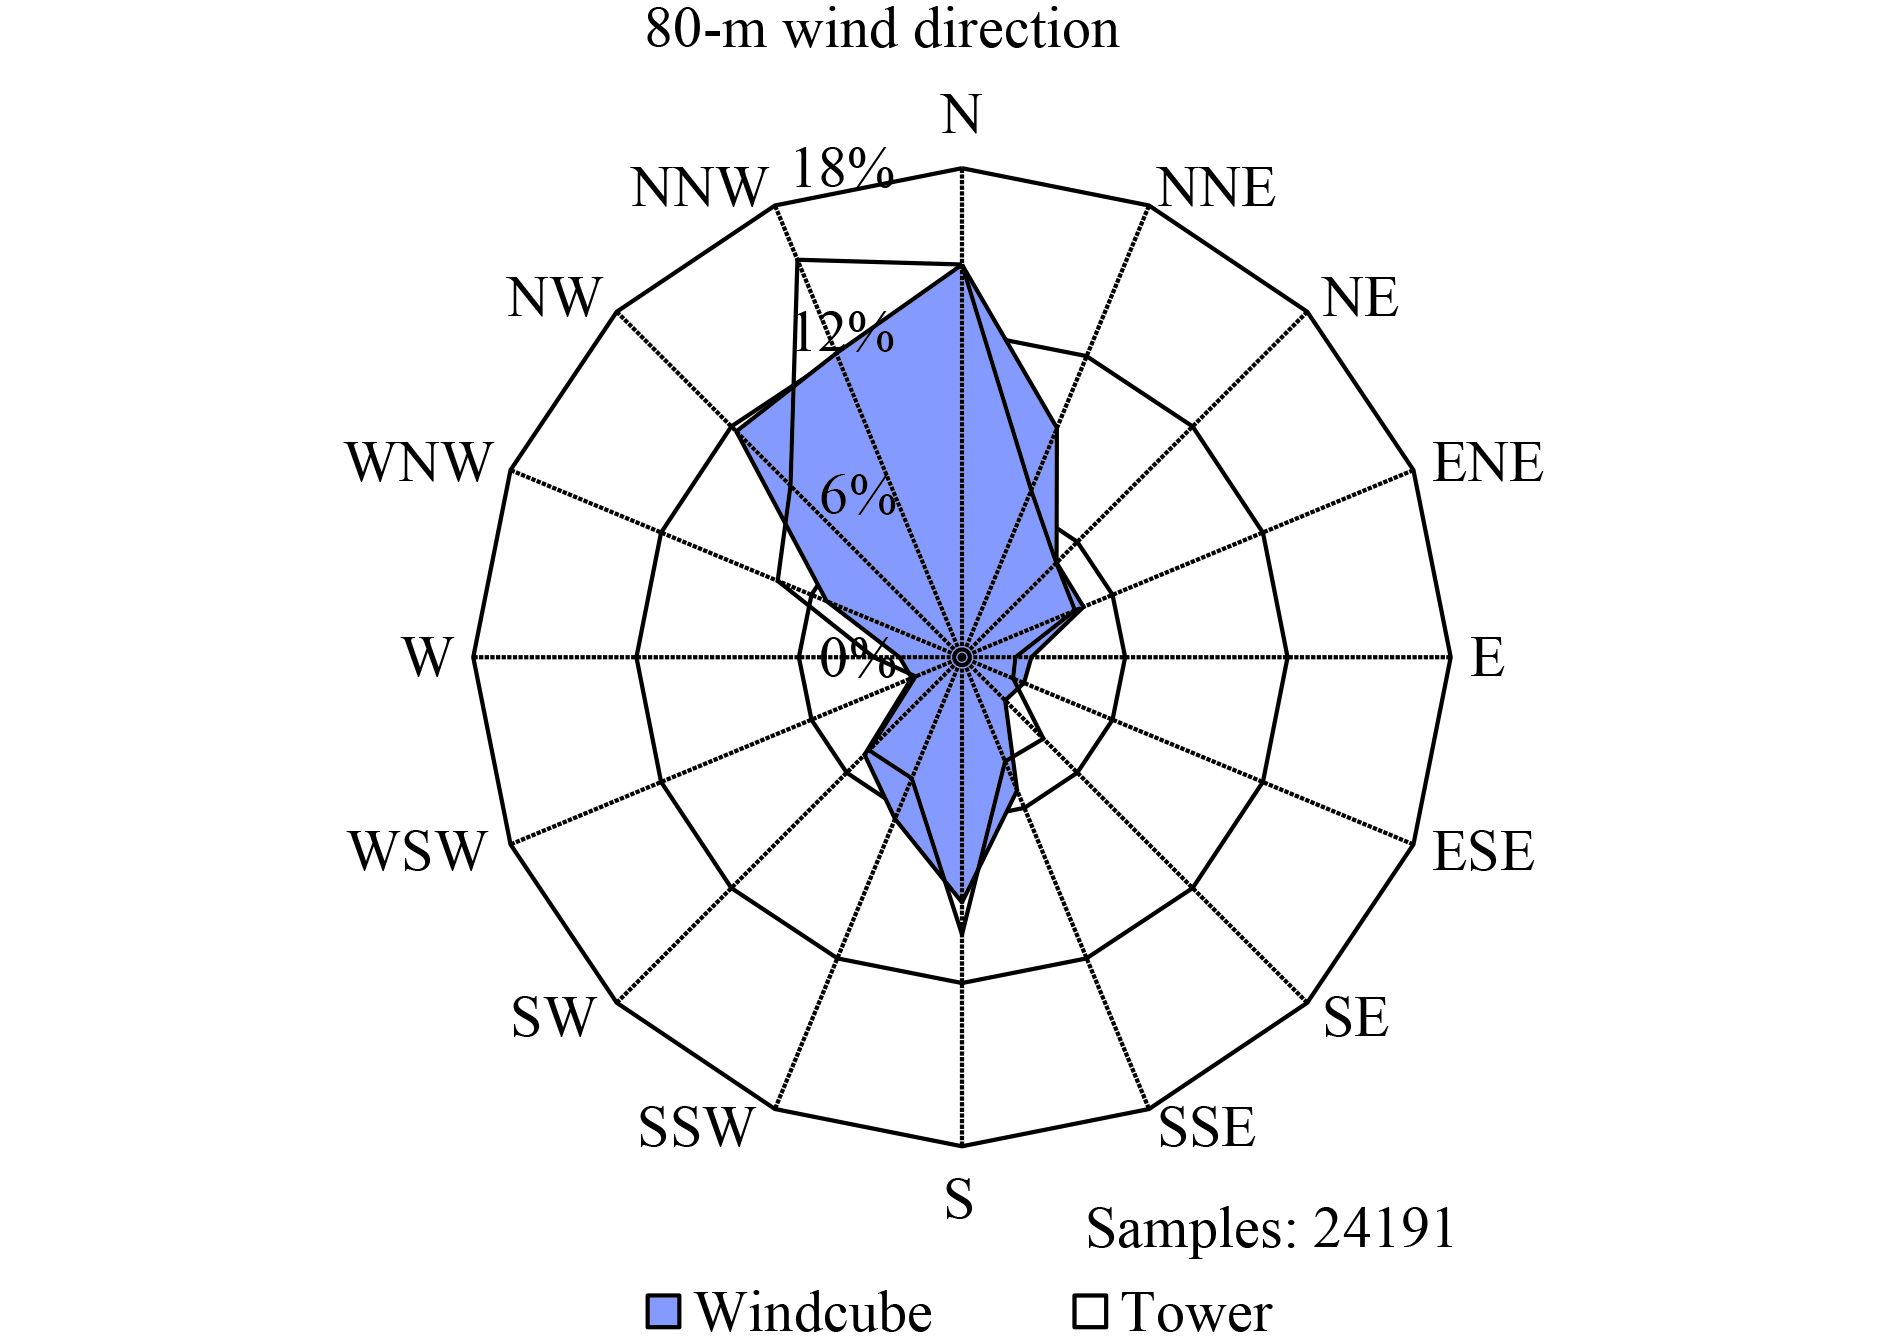 observation of wind shear during evening transition and anfigure 3 wind rose showing the 10 min highest frequency of wind direction measured by the windcube 8 and the wind vane at a height of 80 m (18 october 2013